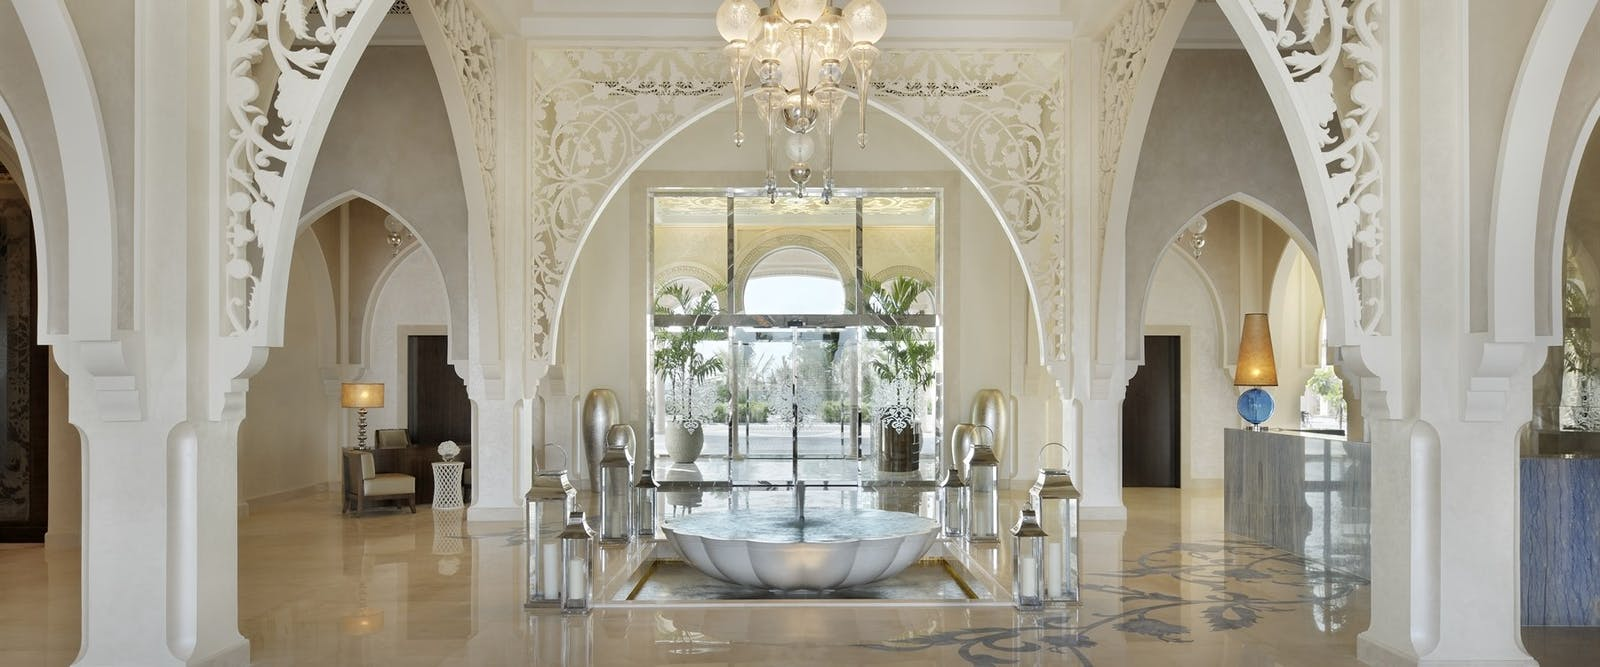 Lobby Area at One&Only The Palm, Dubai